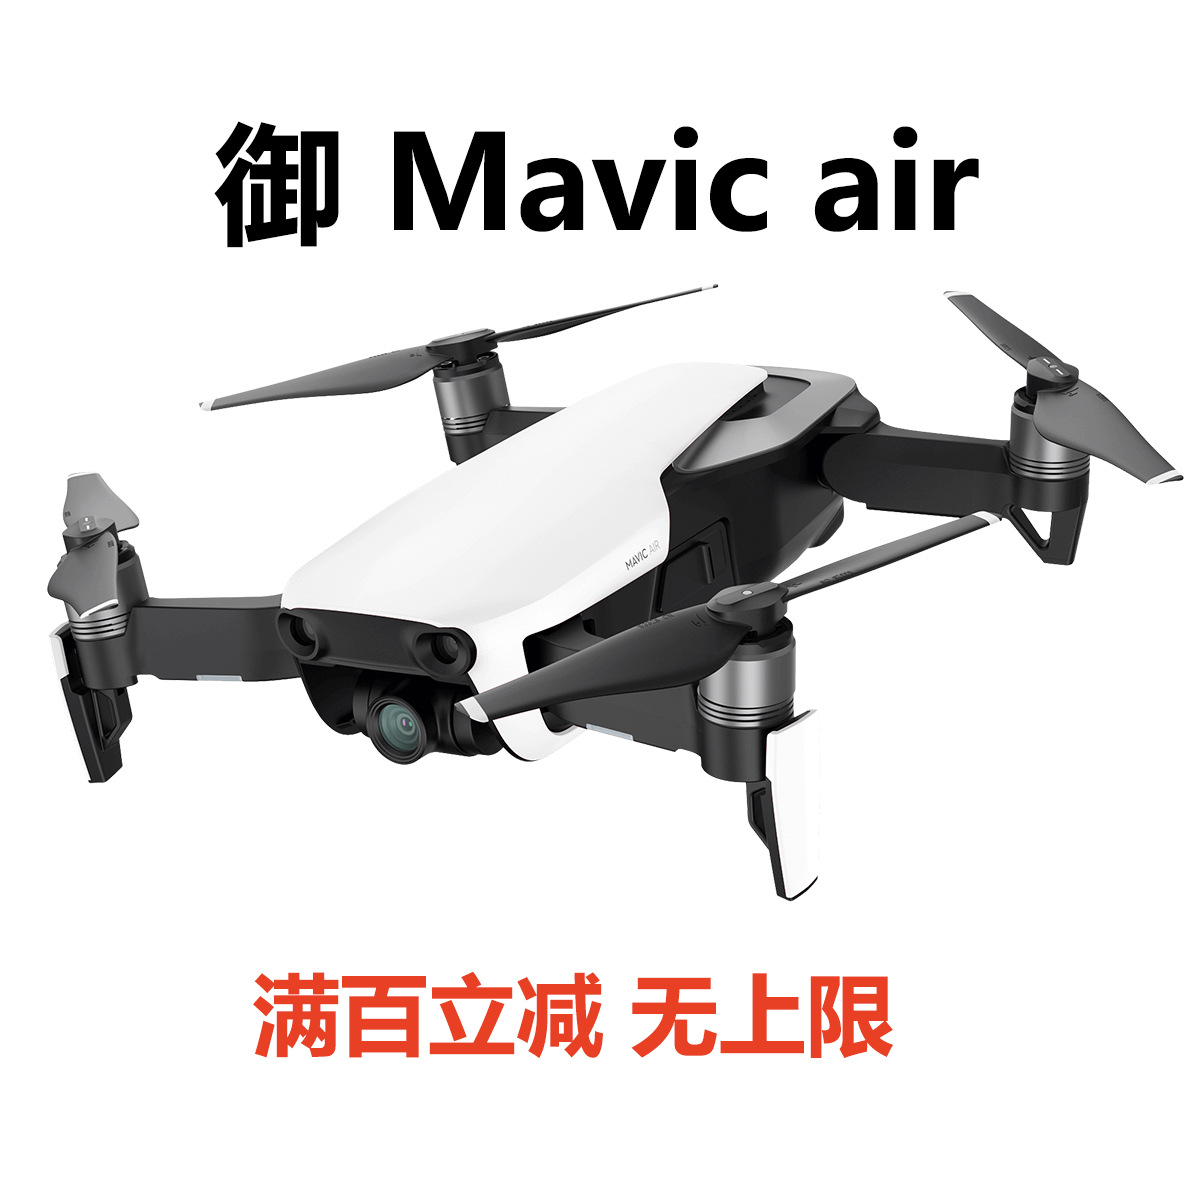 Unmanned Aerial Vehicle ~~~ Rental ~~~ Rental ~~~ Xiao YULAI 2 Air YULAI Pro Elf ~~~ 4pro Wu 2 Hui